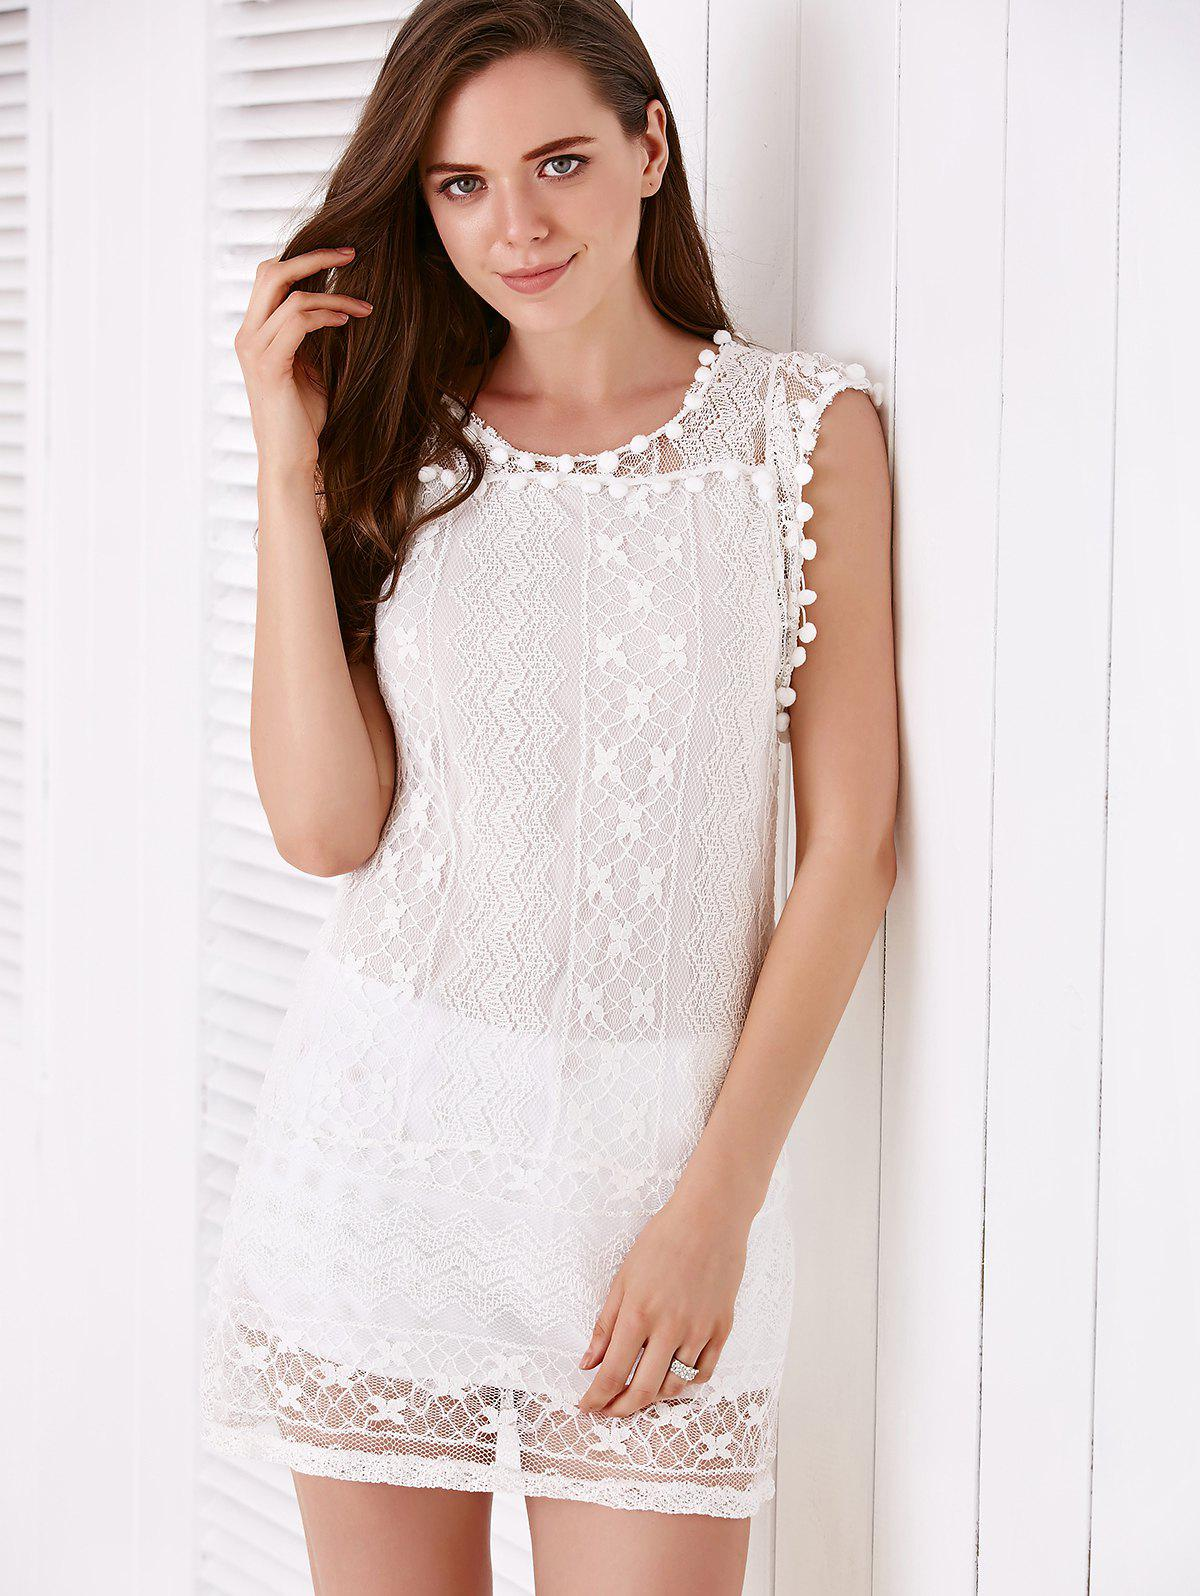 Simple Sleeveless Scoop Collar Solid Color See-Through Women's Dress - WHITE S